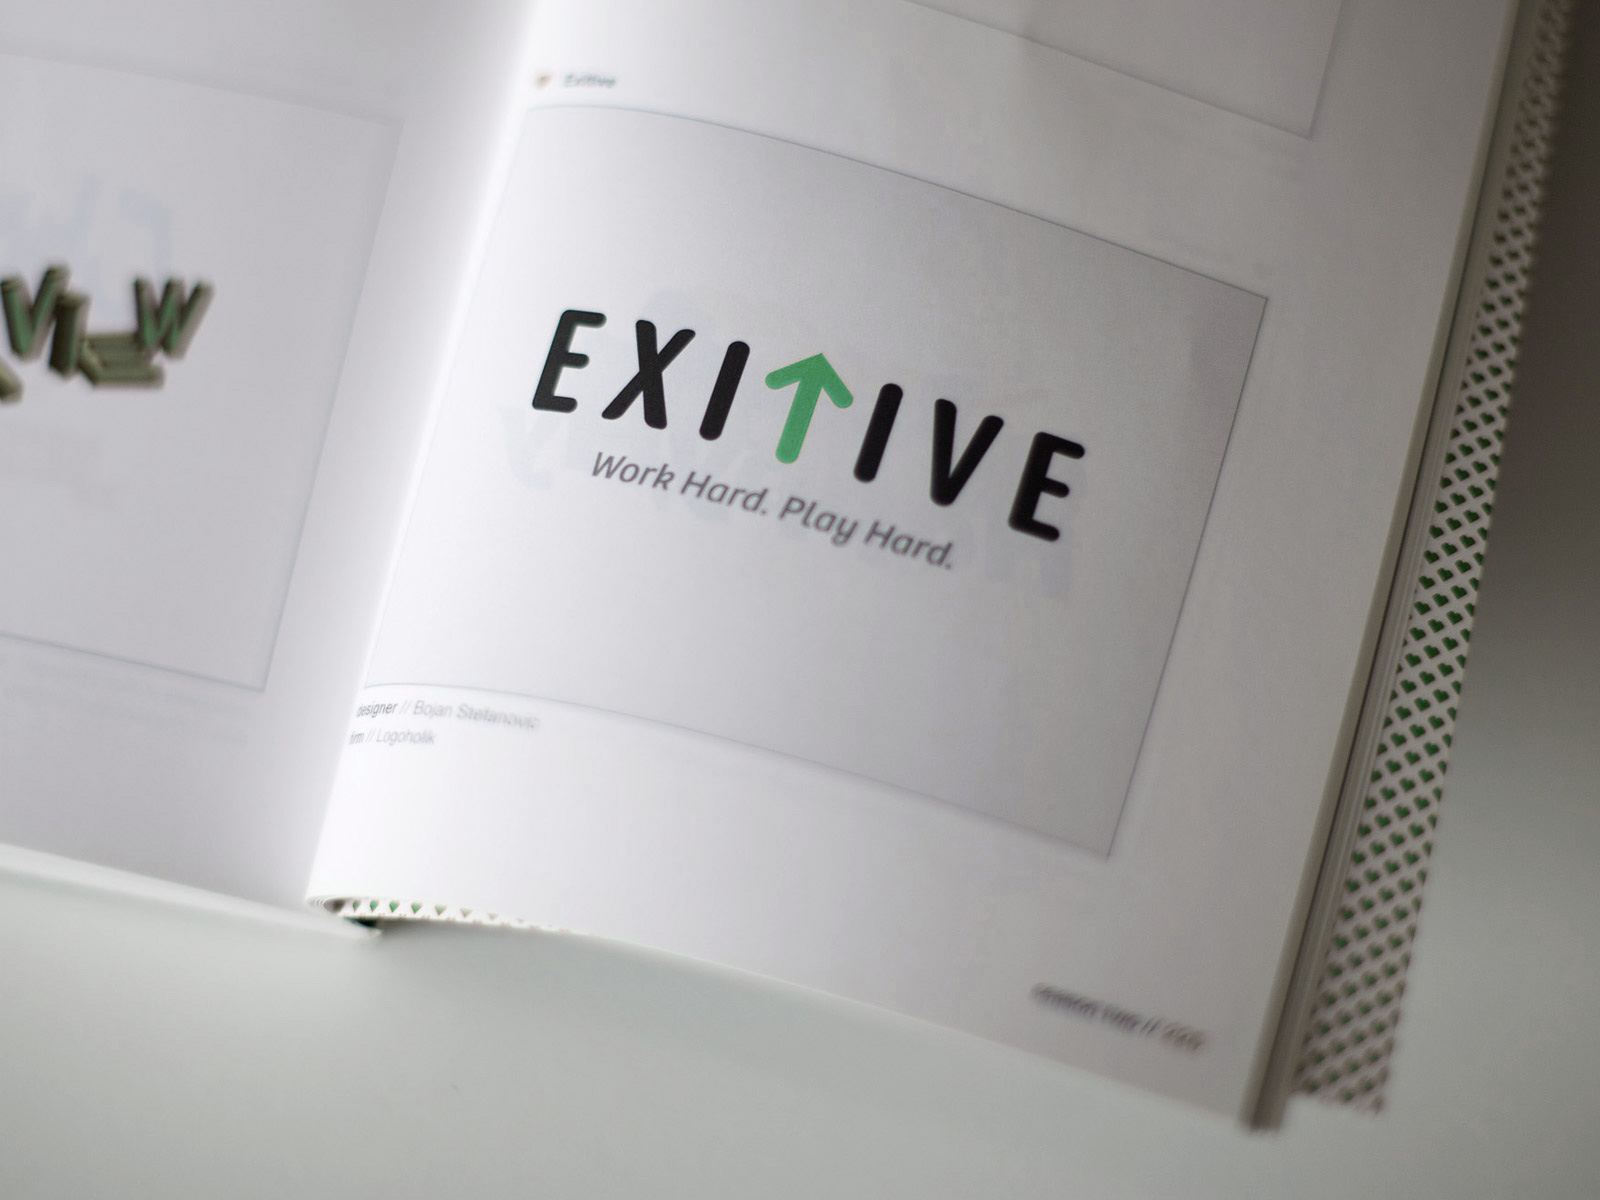 Exitive - published logo design